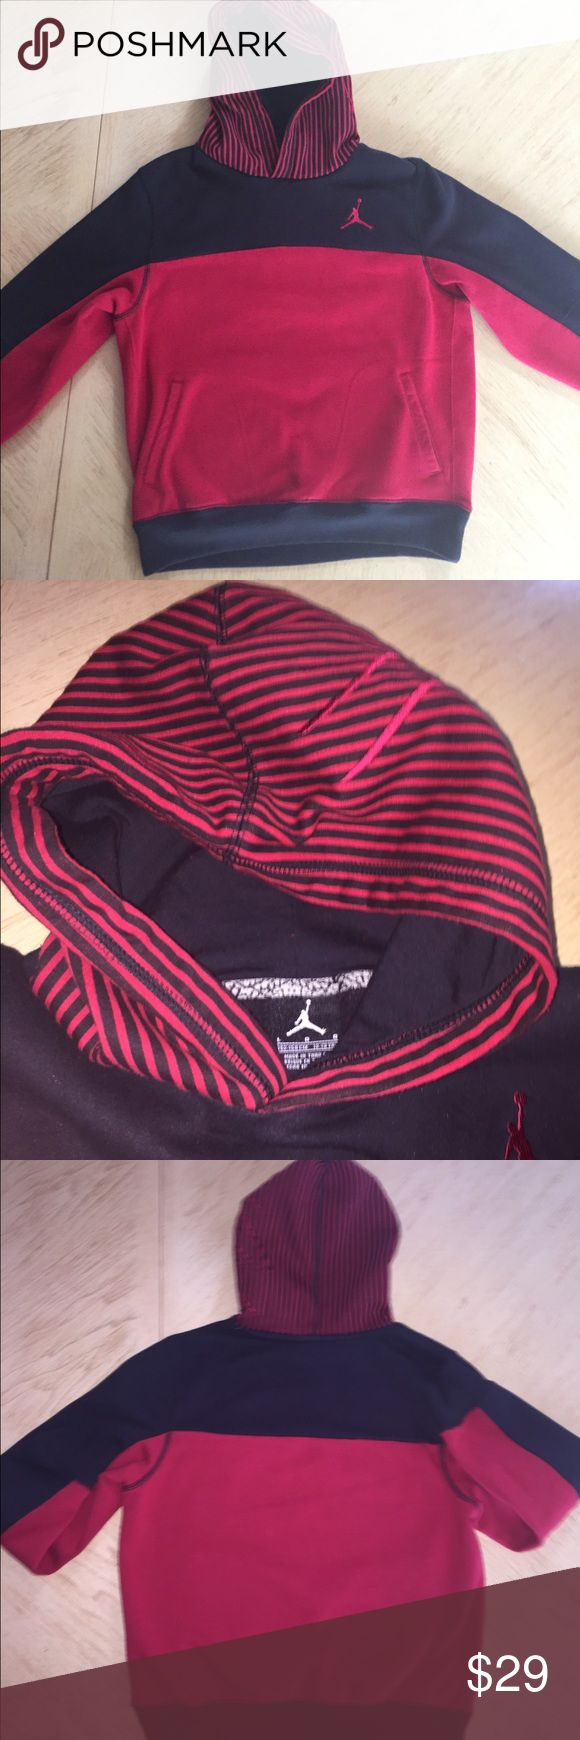 Boy's Jordan Hoodie Black & Red Boys Sz Large Jordan Hoodie, With Detail Design Hood. In Excellent Used Condition. Worn & Washed Once. More Pics Upon Request. Please Ask Questions Before Purchasing! Thanks for Browsing & Happy Poshing! ❤️🦋🦋 Jordan Shirts & Tops Sweatshirts & Hoodies